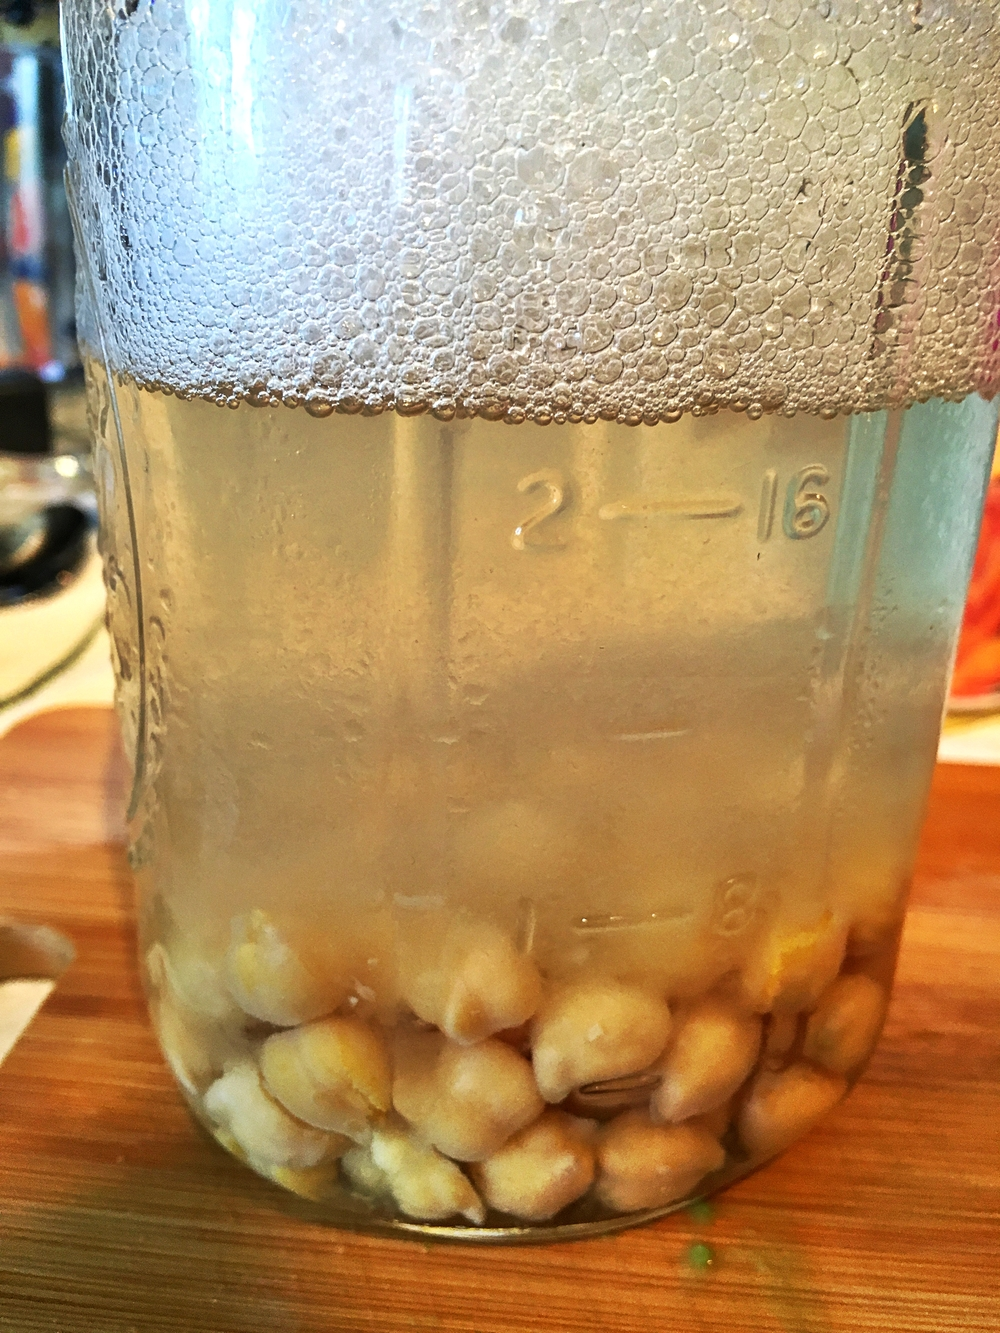 Those bubbles you see in the water? Fart inducing! Just rinse your beans before you use them.